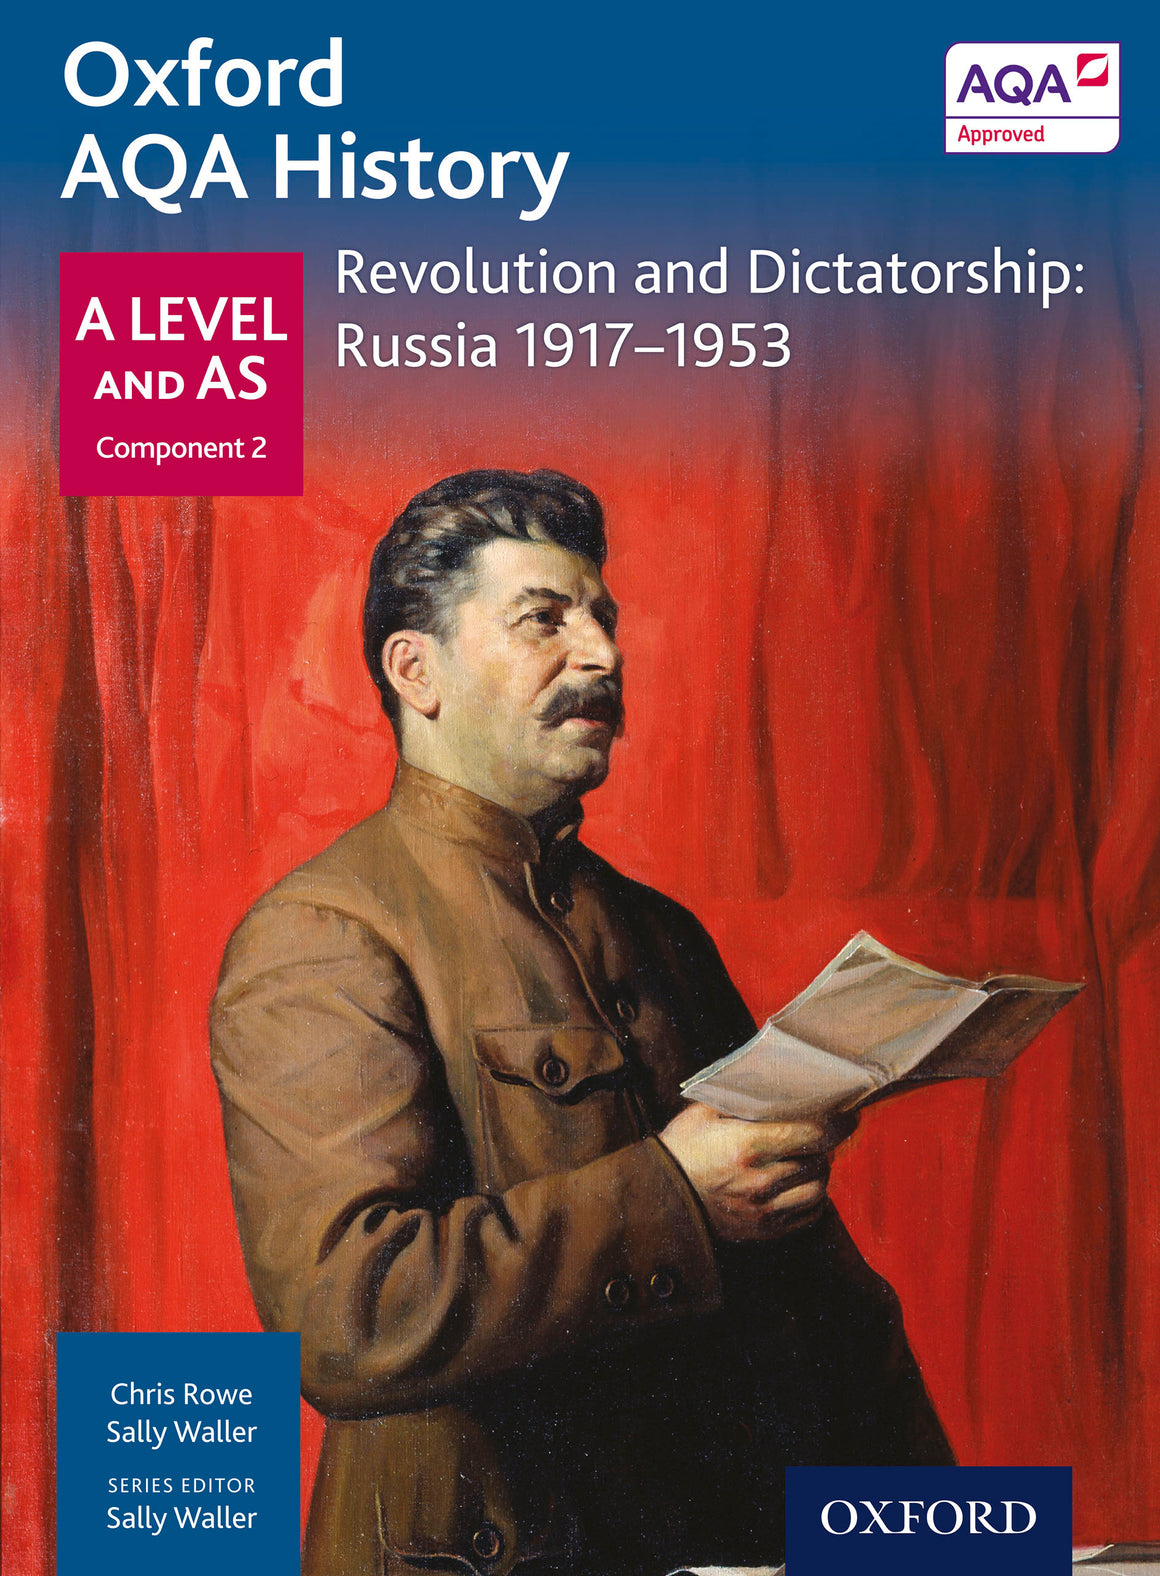 Oxford AQA History for A Level: Revolution and Dictatorship: Russia 1917-1953